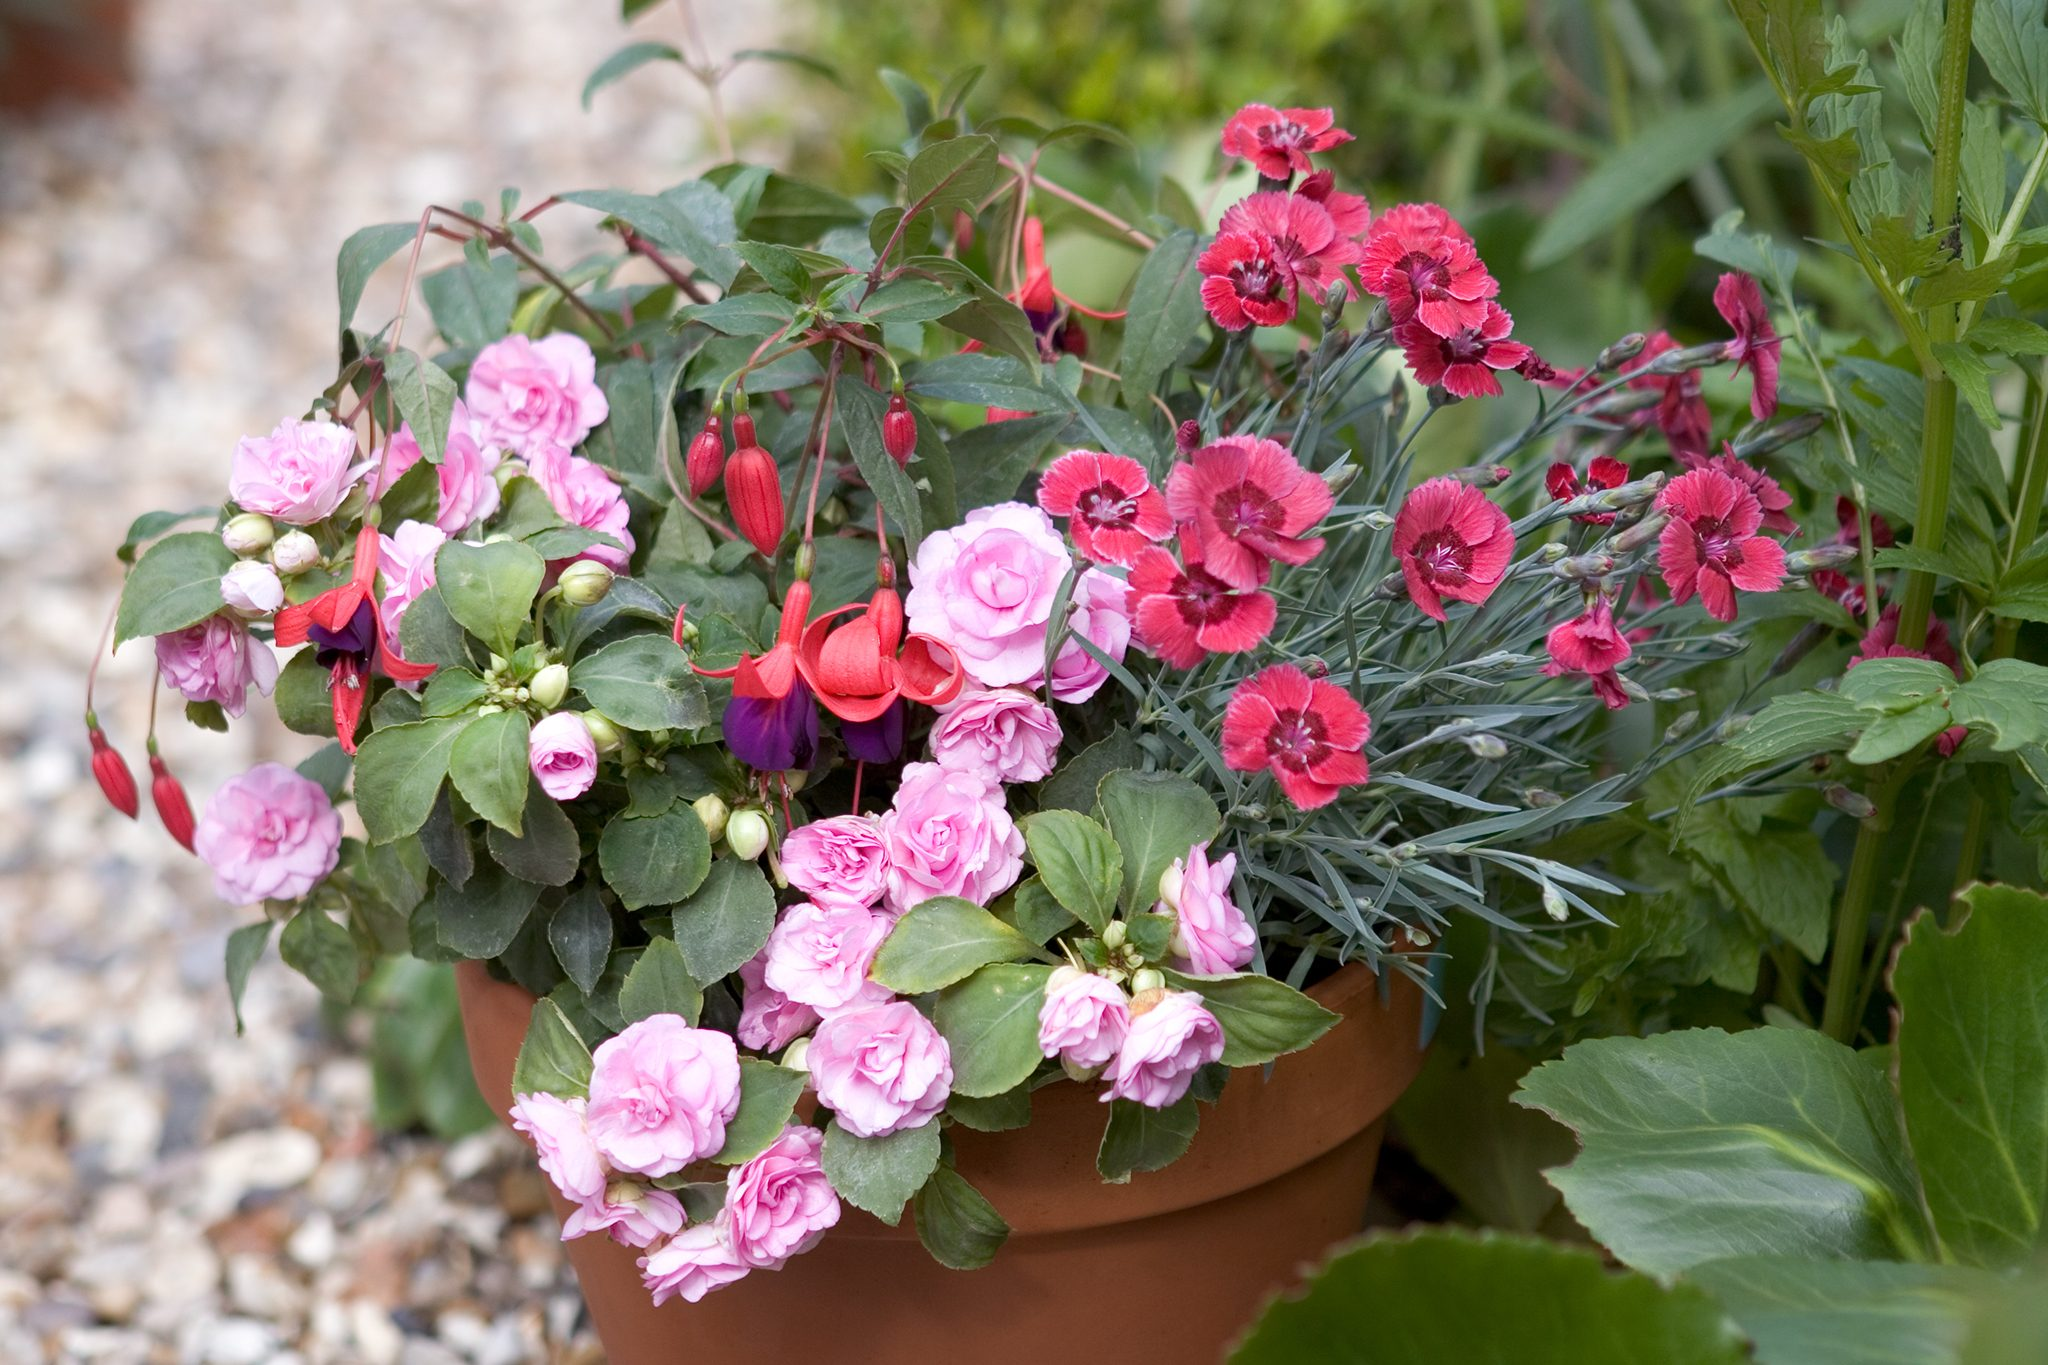 Gardeners World & Top 10 plants for containers - BBC Gardeners\u0027 World Magazine